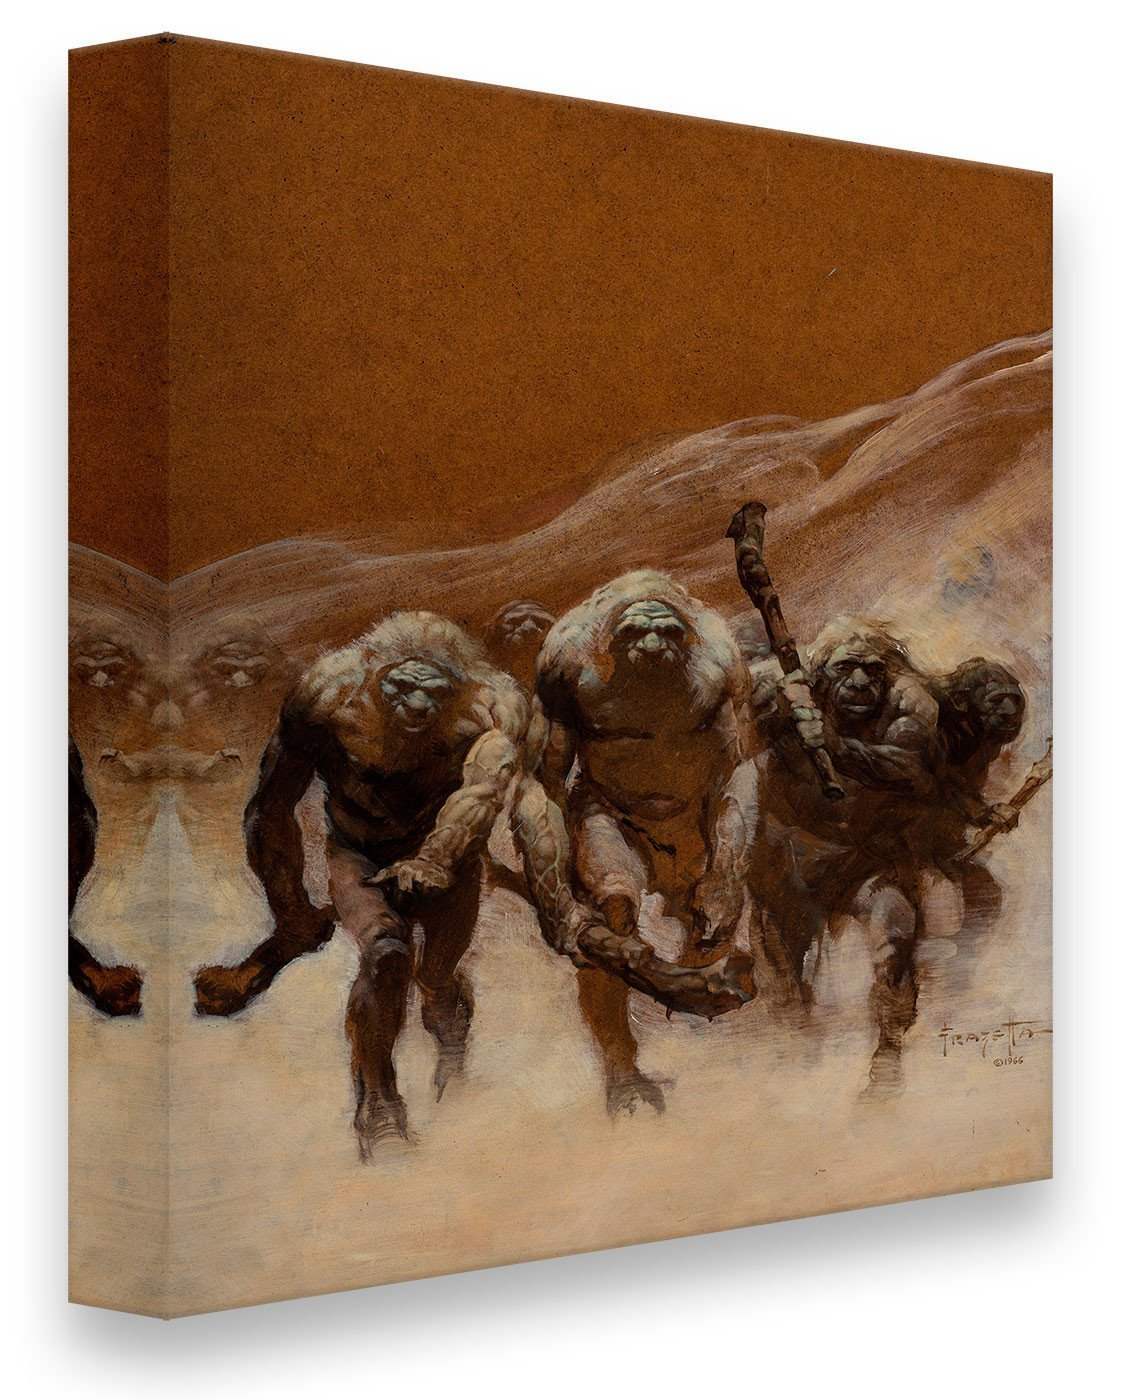 FrazettaGirls Art Print Canvas / Stretched on wooden bar / 18x24 Neanderthal Print